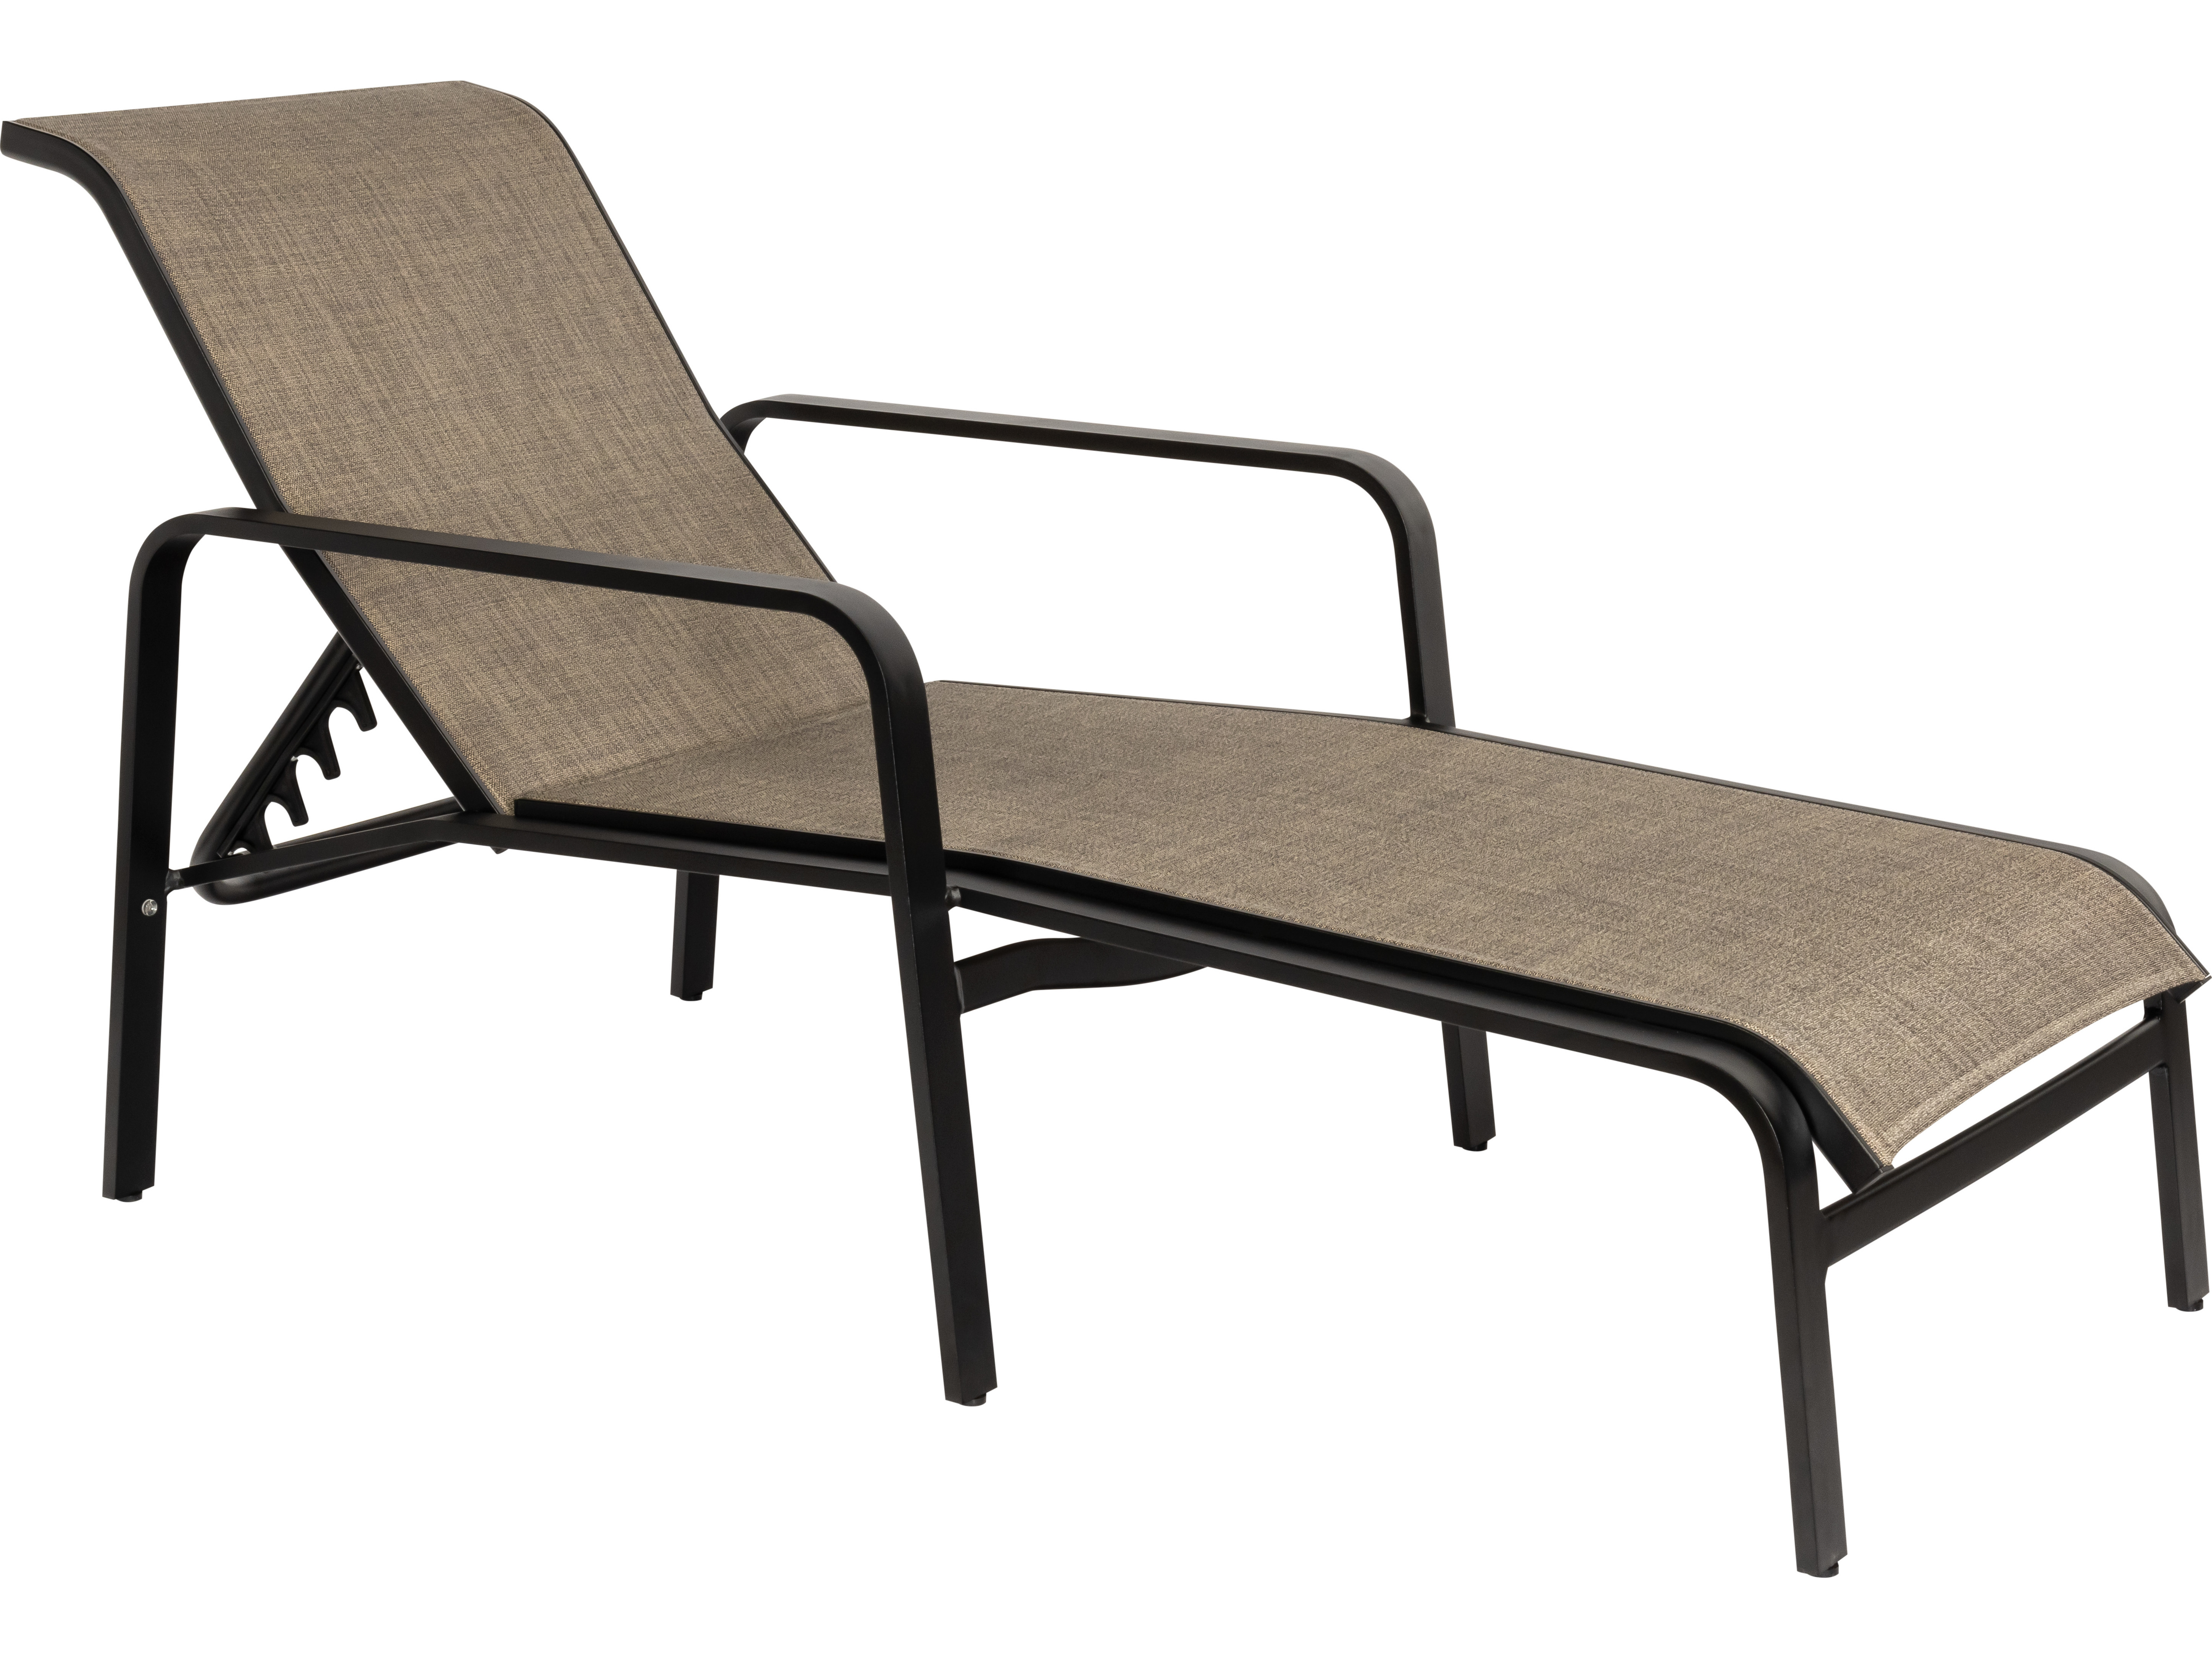 Sling Chaise Lounge Outdoor Part - 33: Hover To Zoom